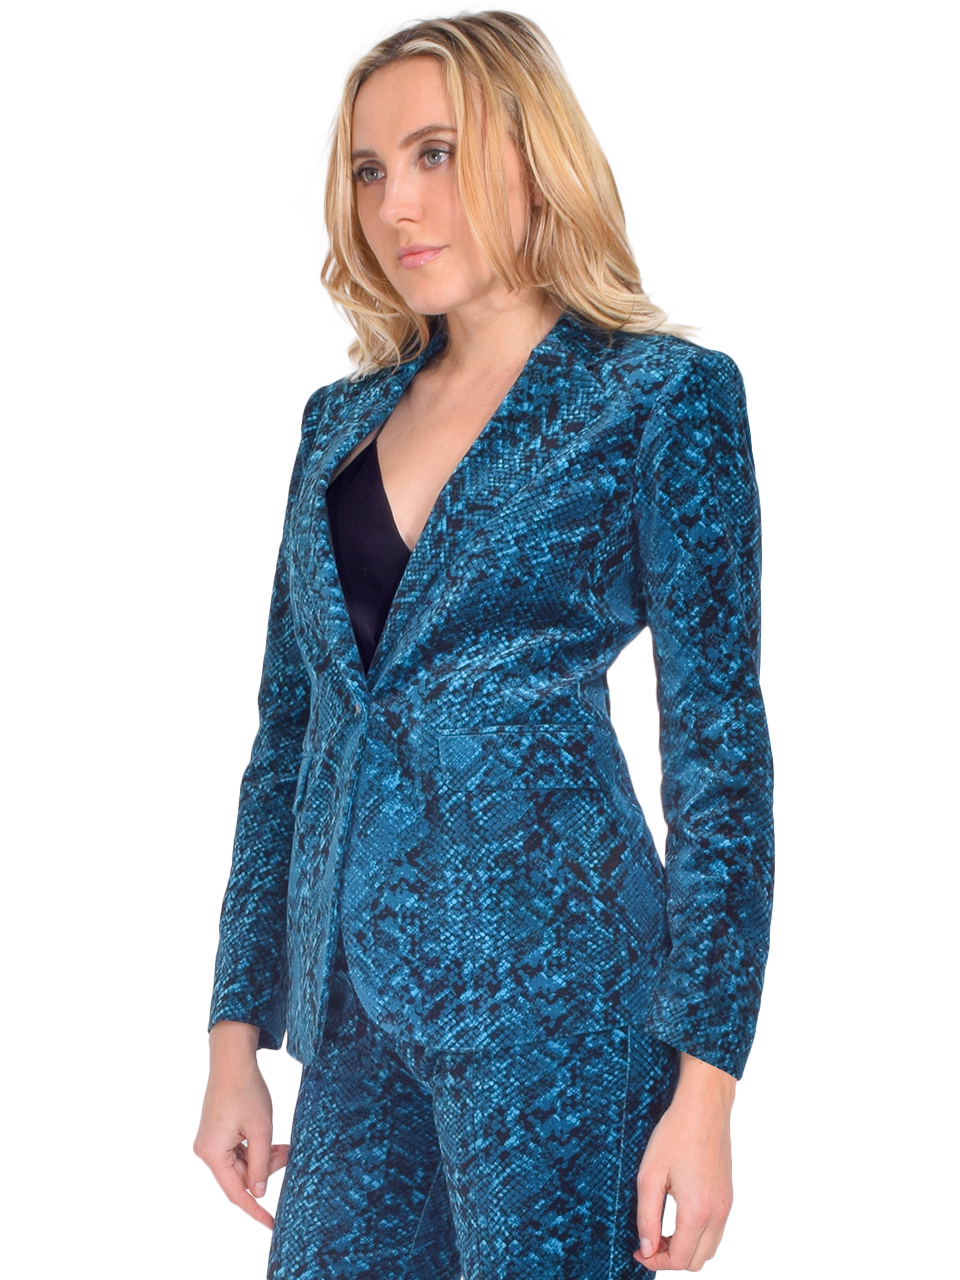 MISA Catroux Jacket in Teal Snake Side View